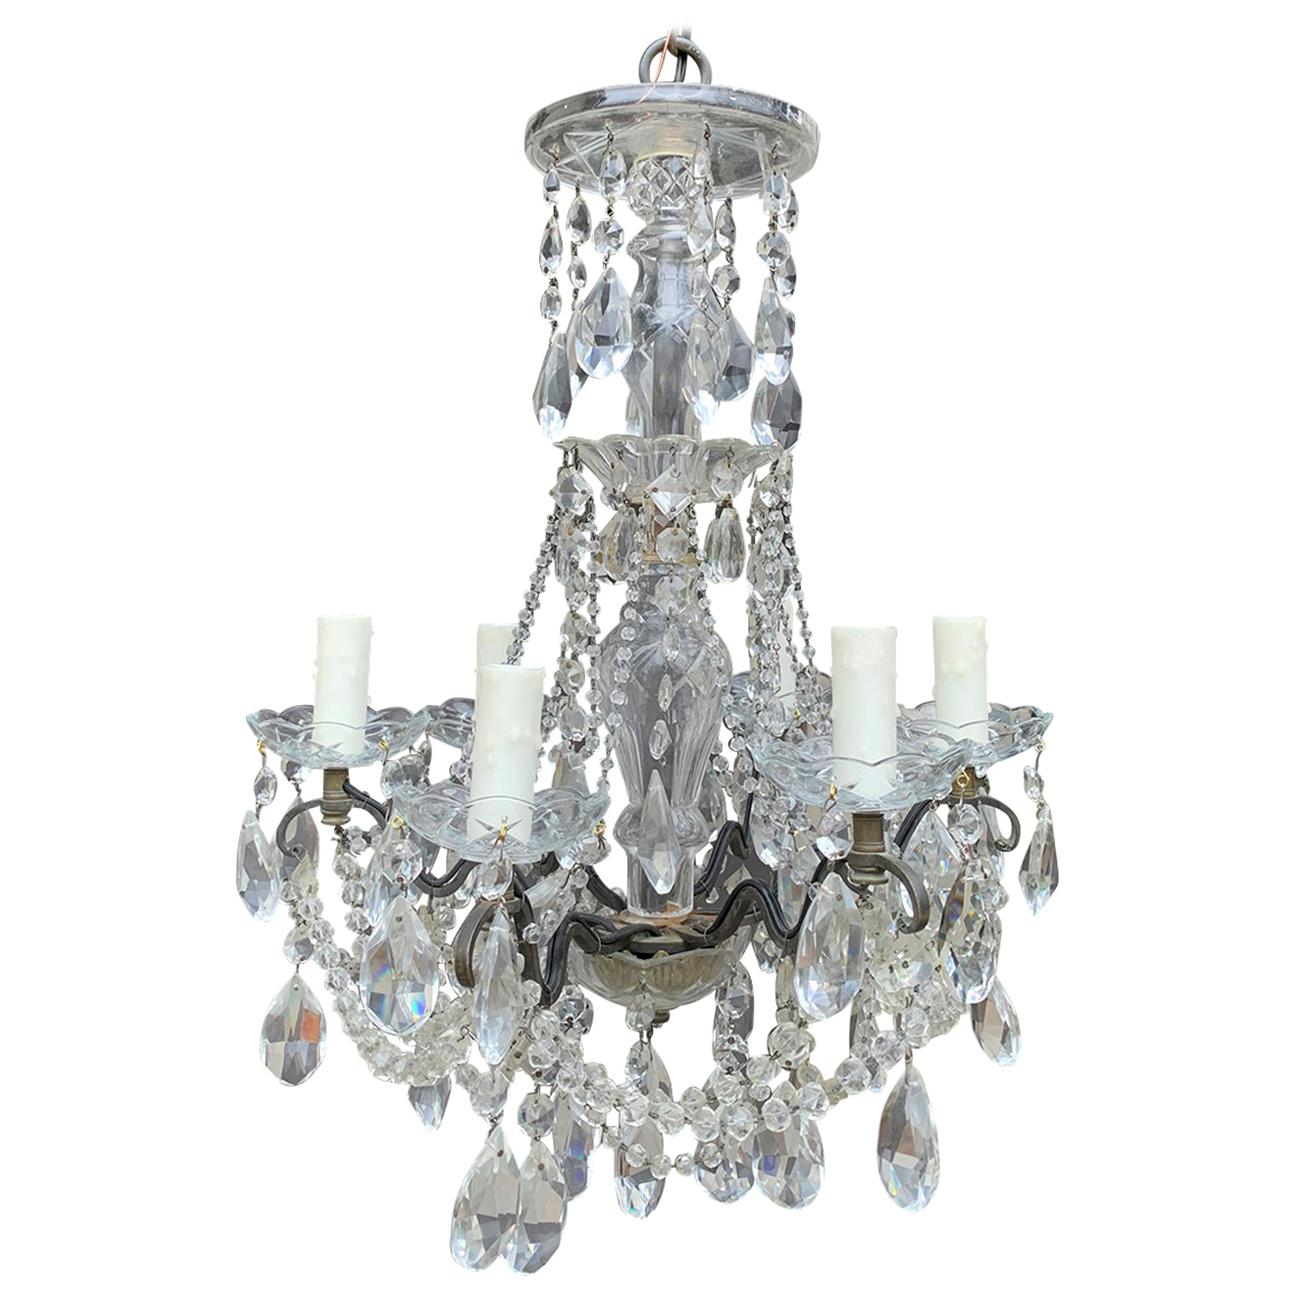 Mid-20th Century Crystal and Bronze Six-Arm Chandelier with Prisms